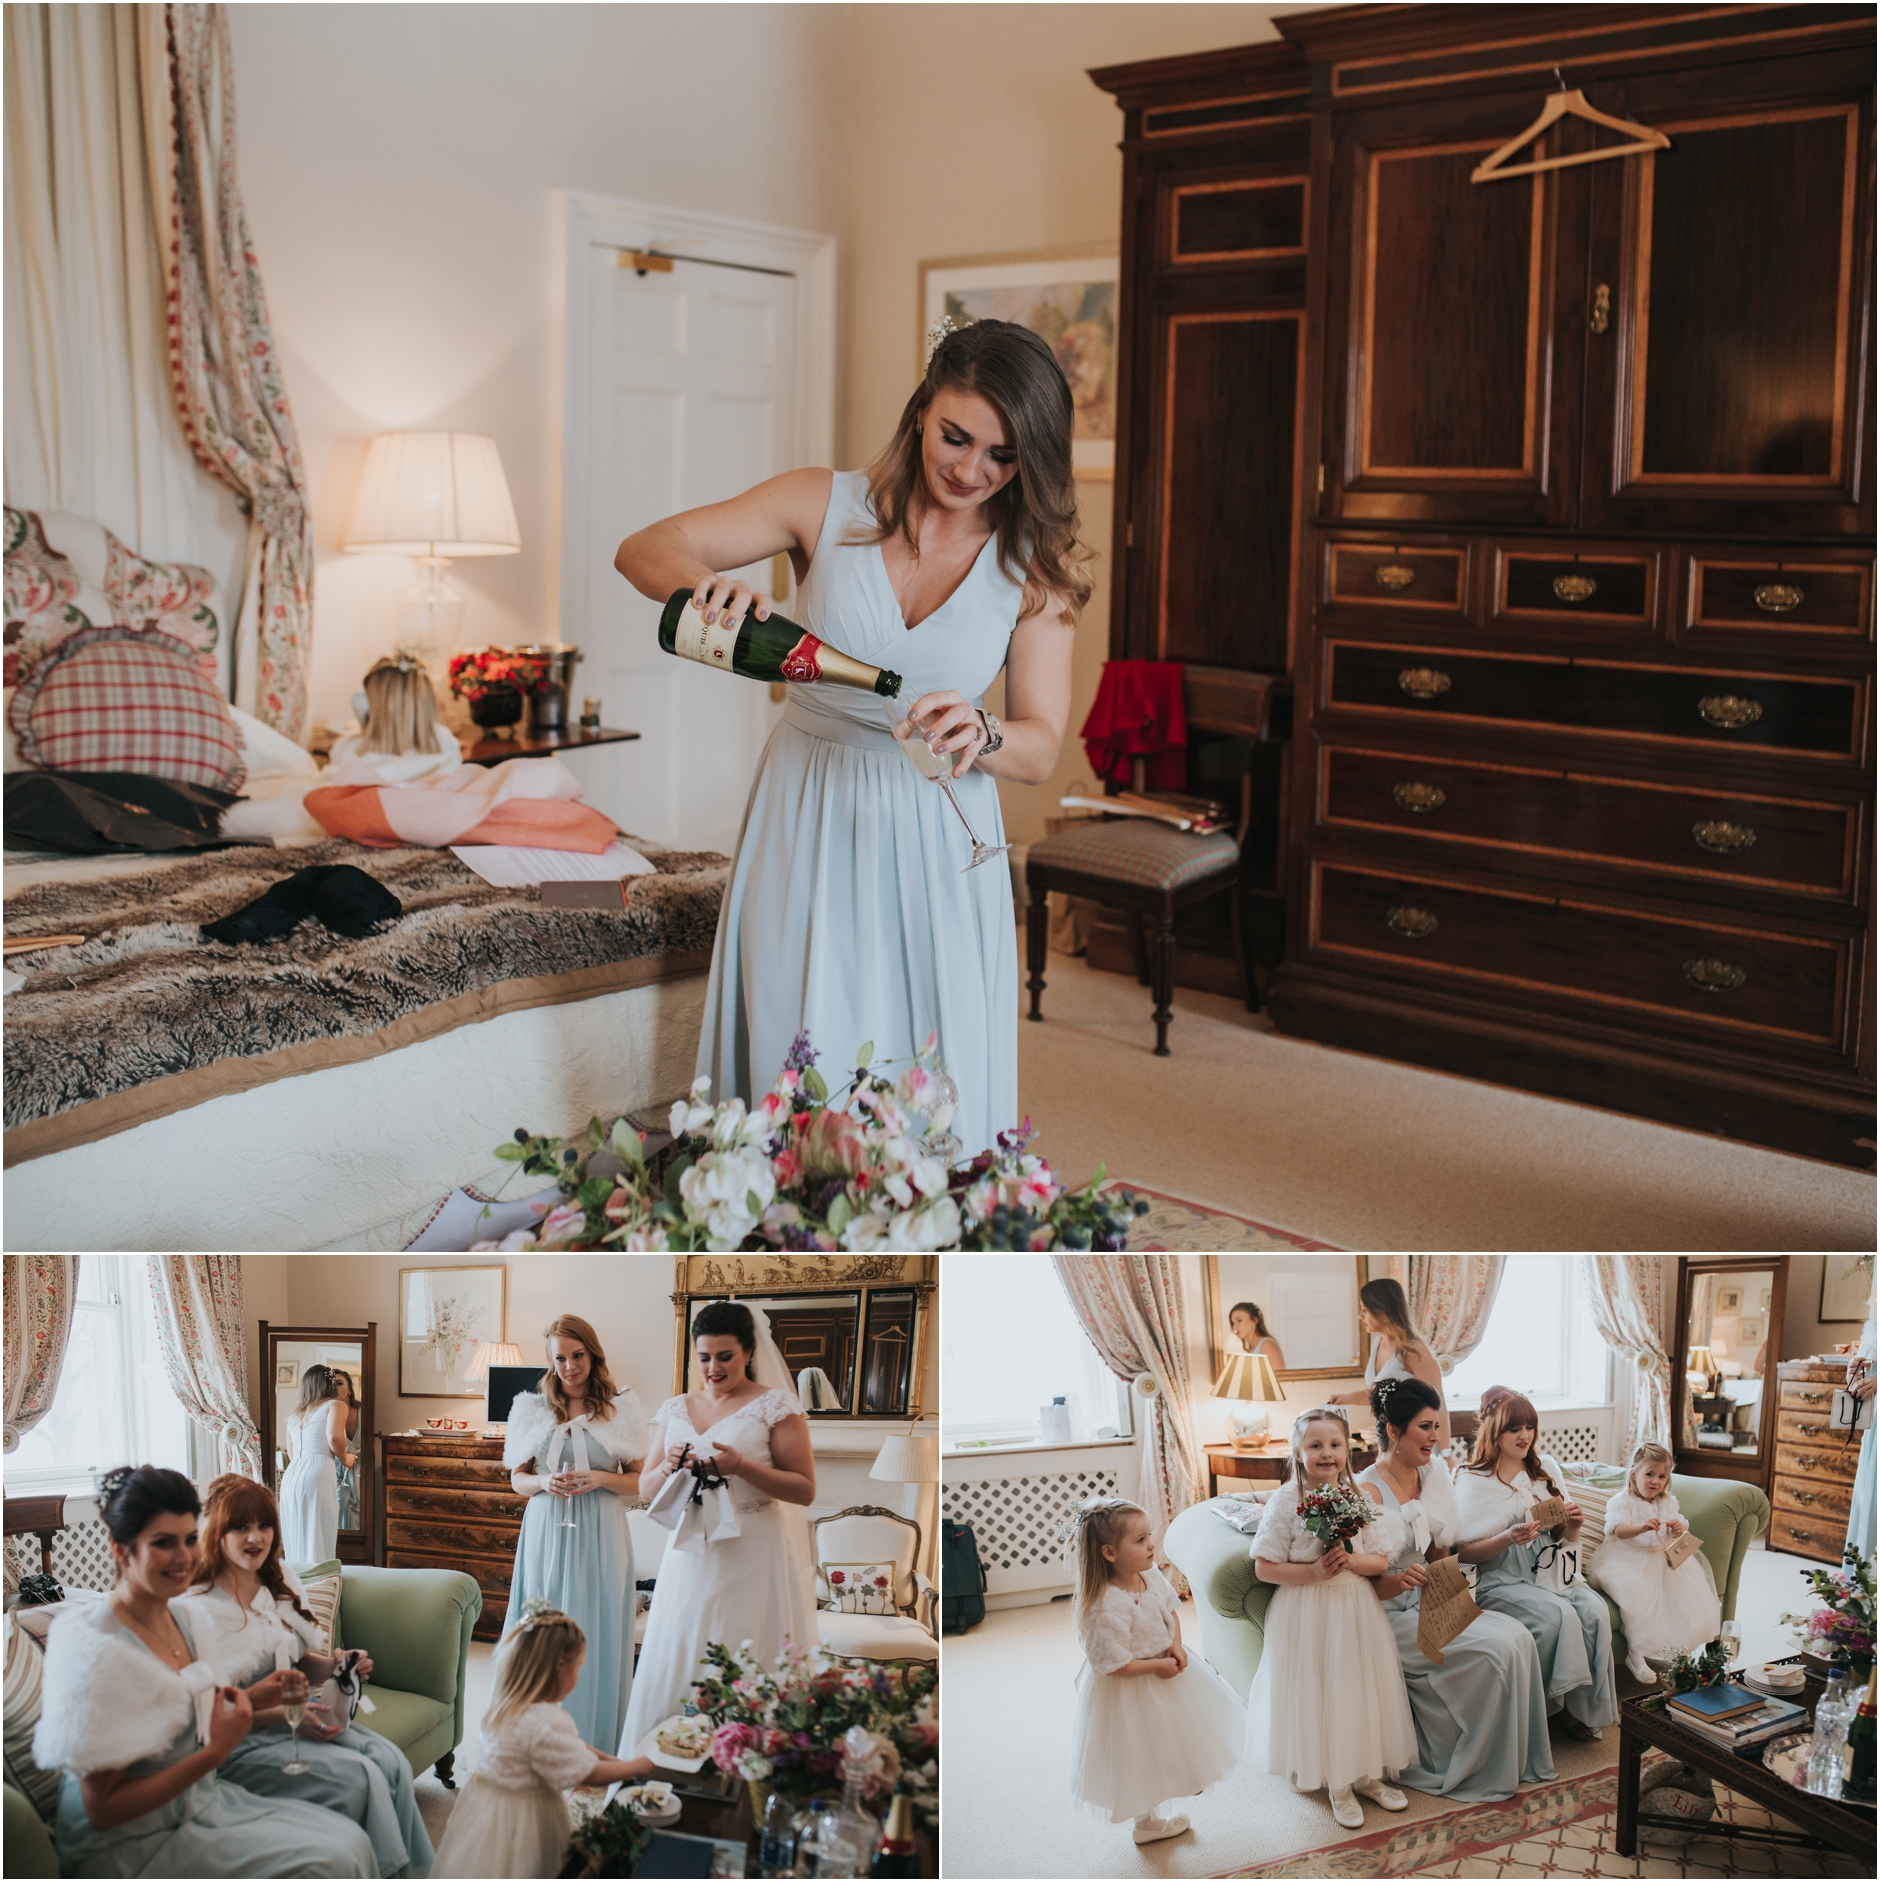 dundas castle wedding bridal party opening gifts and pouring champage